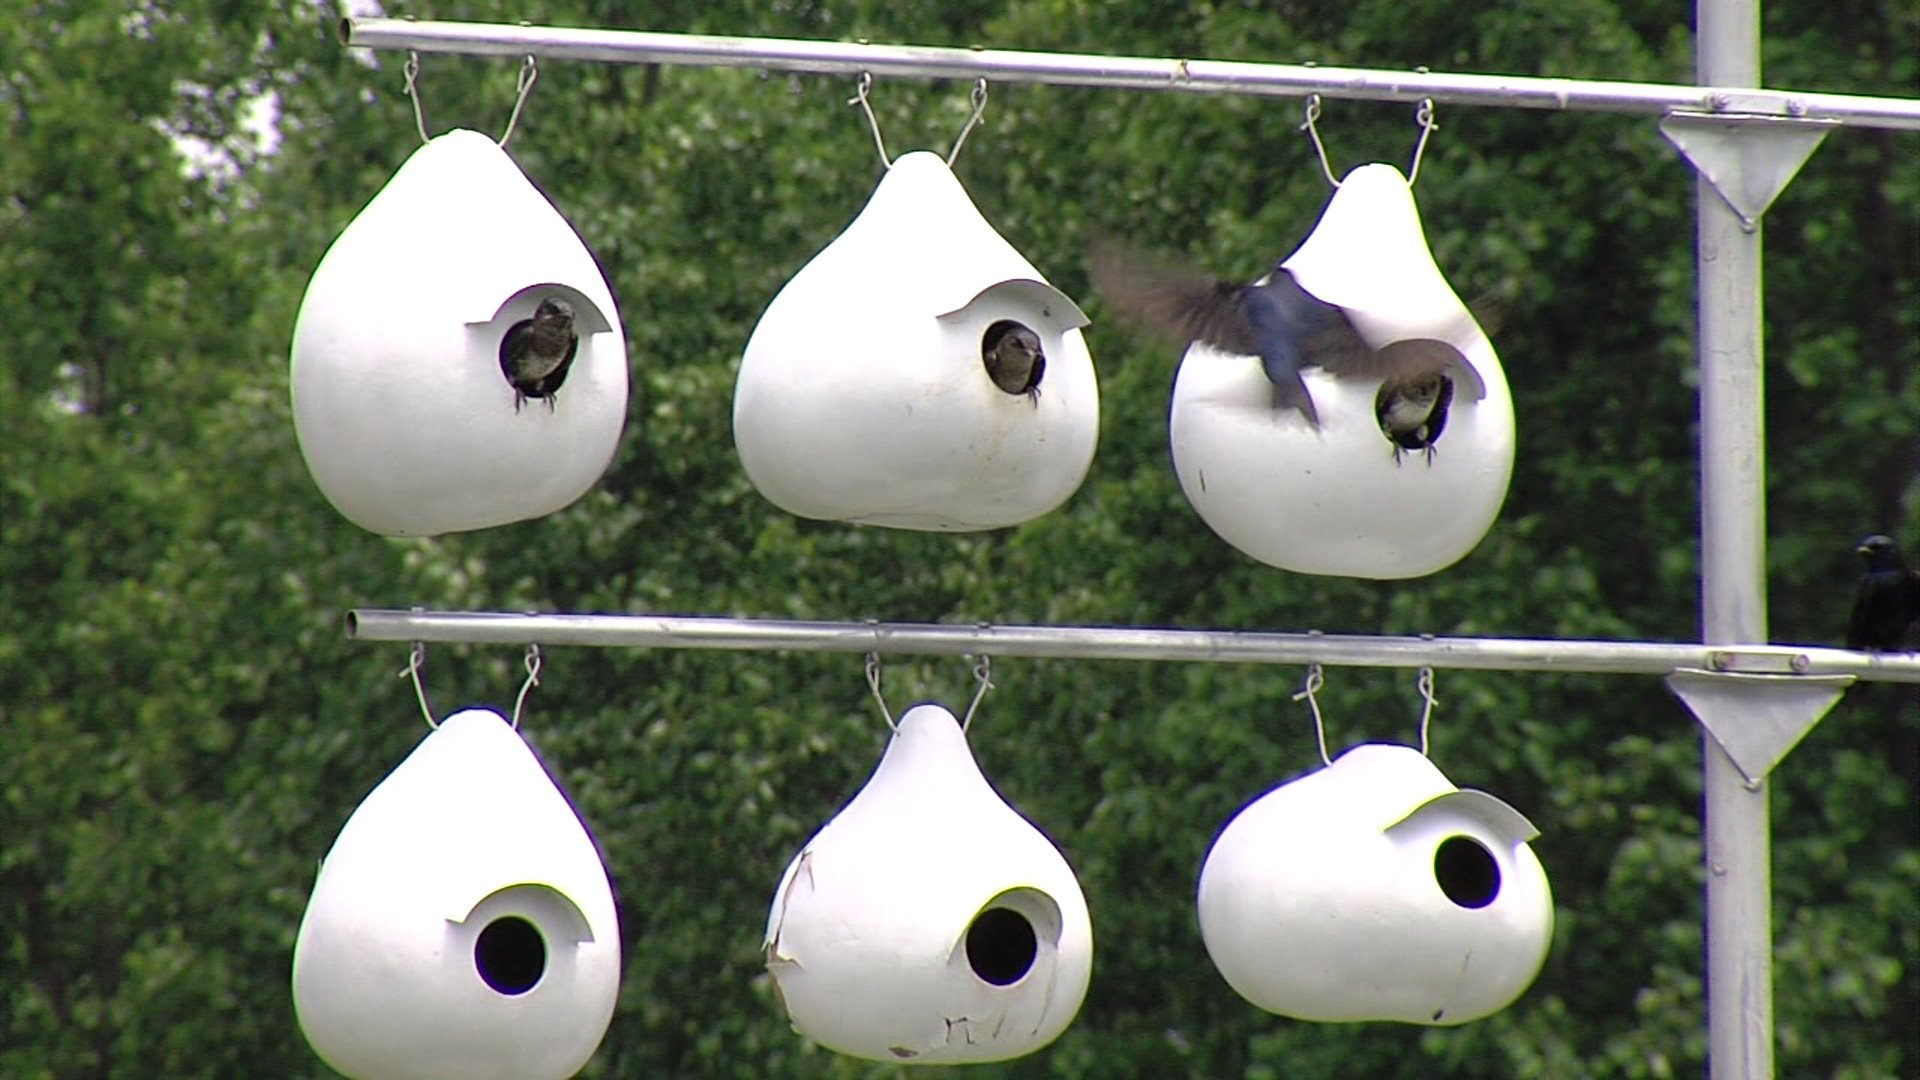 Midway man turns a backyard into Purple Martin paradise